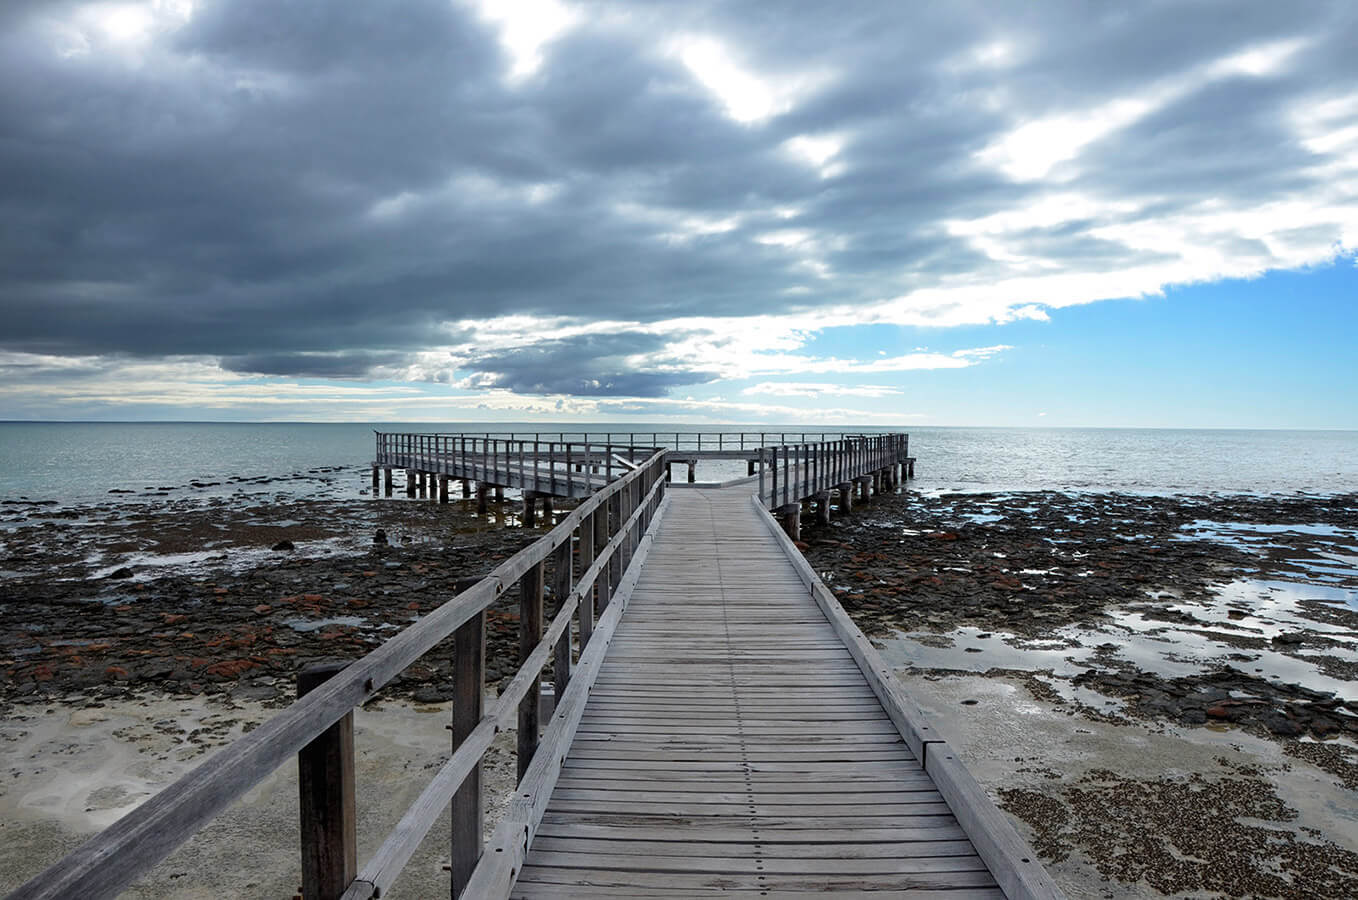 Pier at Shark Bay National Park Australia by Carrie Morgan